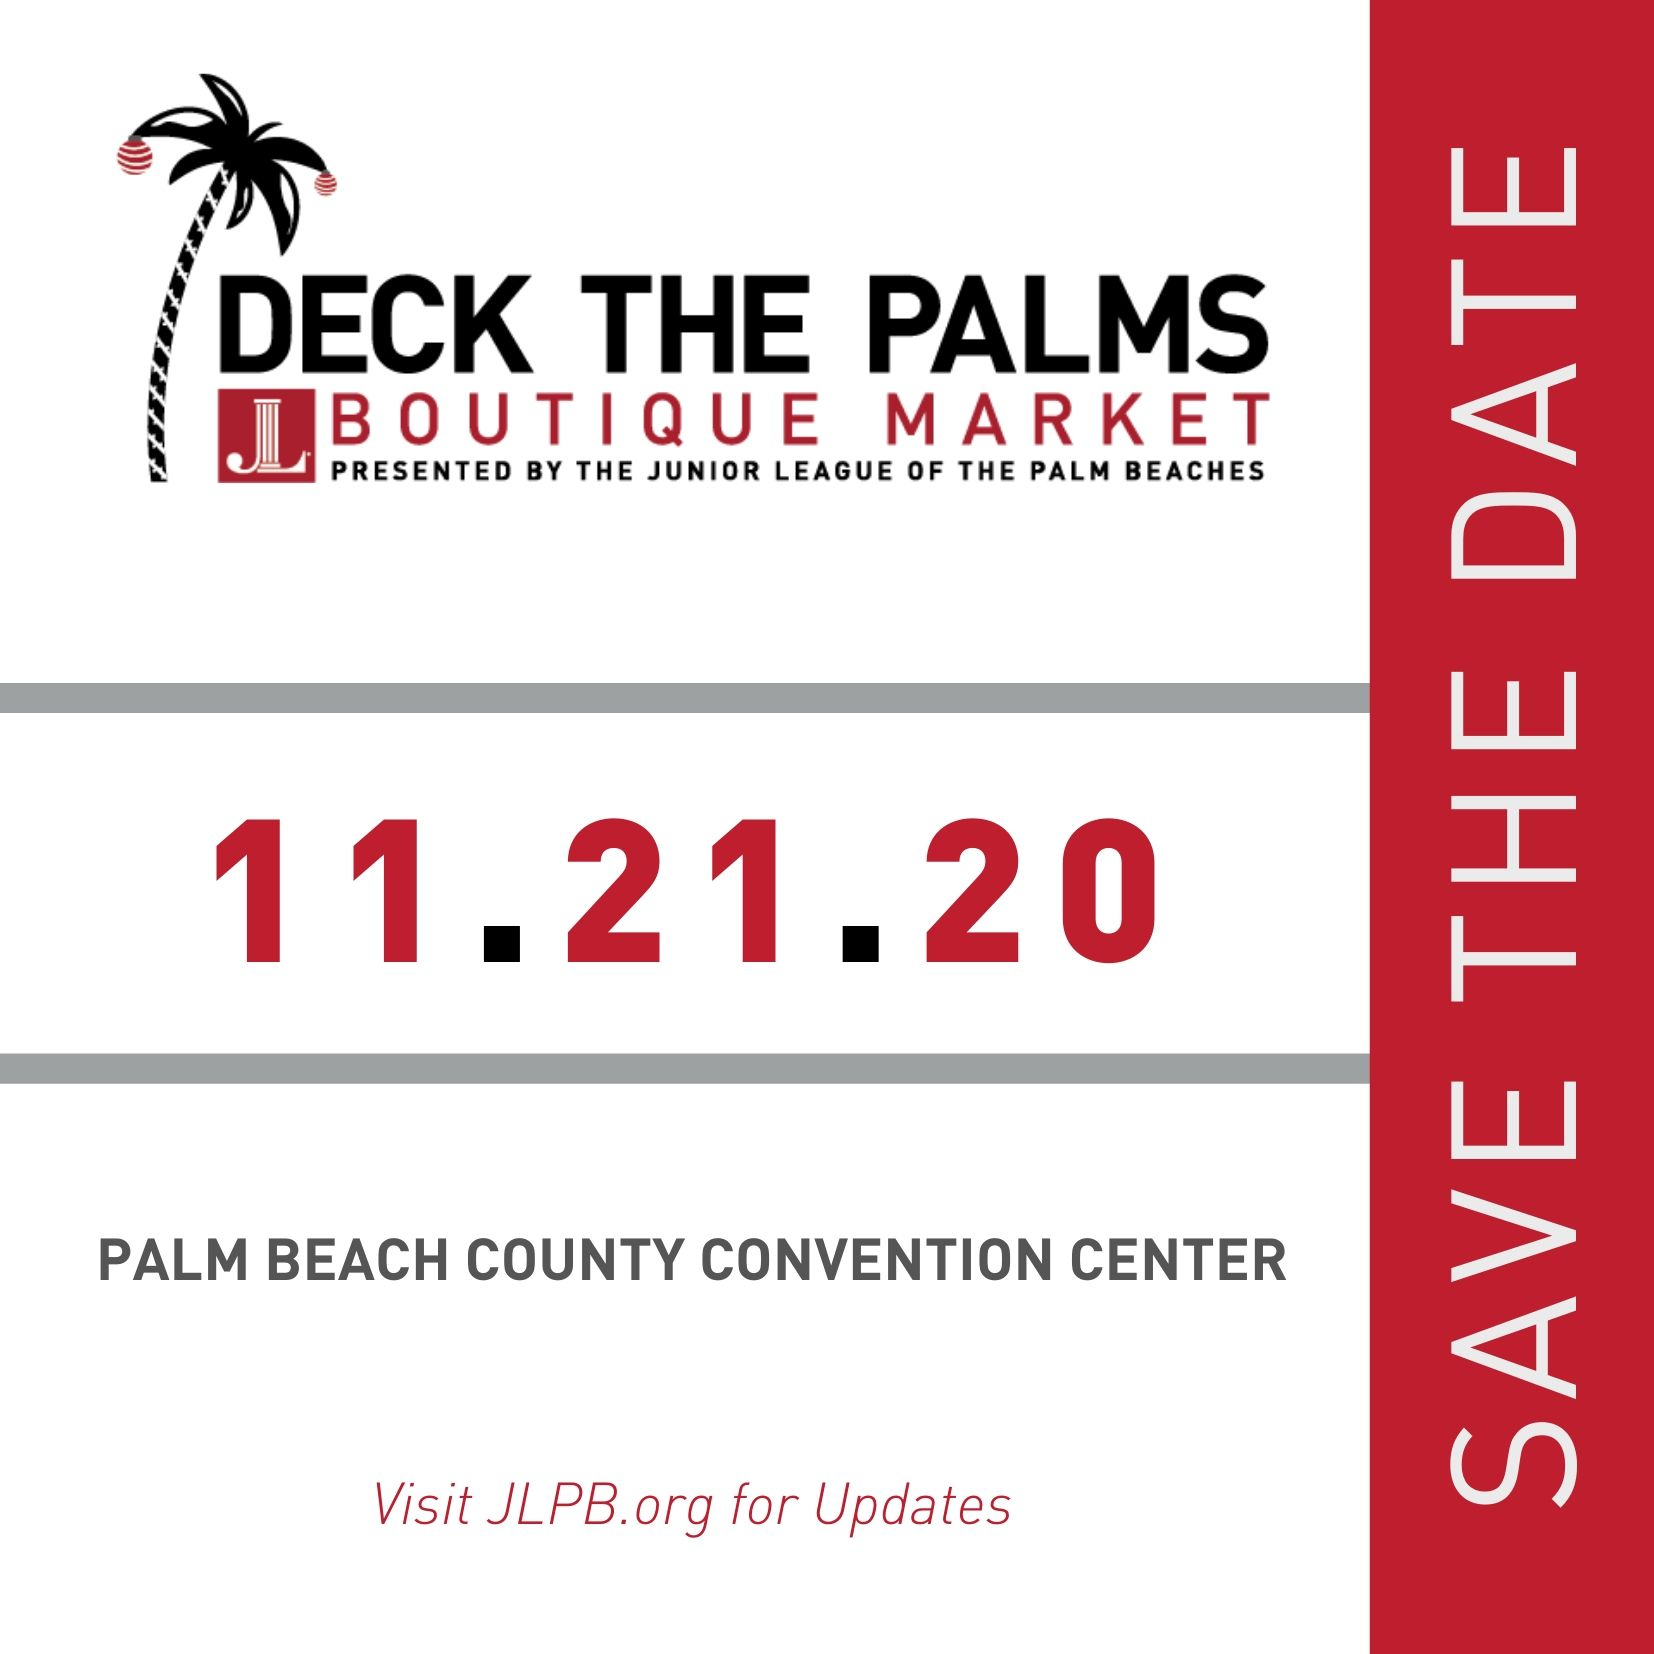 Deck The Palms Boutique Market - Jl Palm Beachesjl Palm Beaches Throughout Palm Beach County Auction Calender